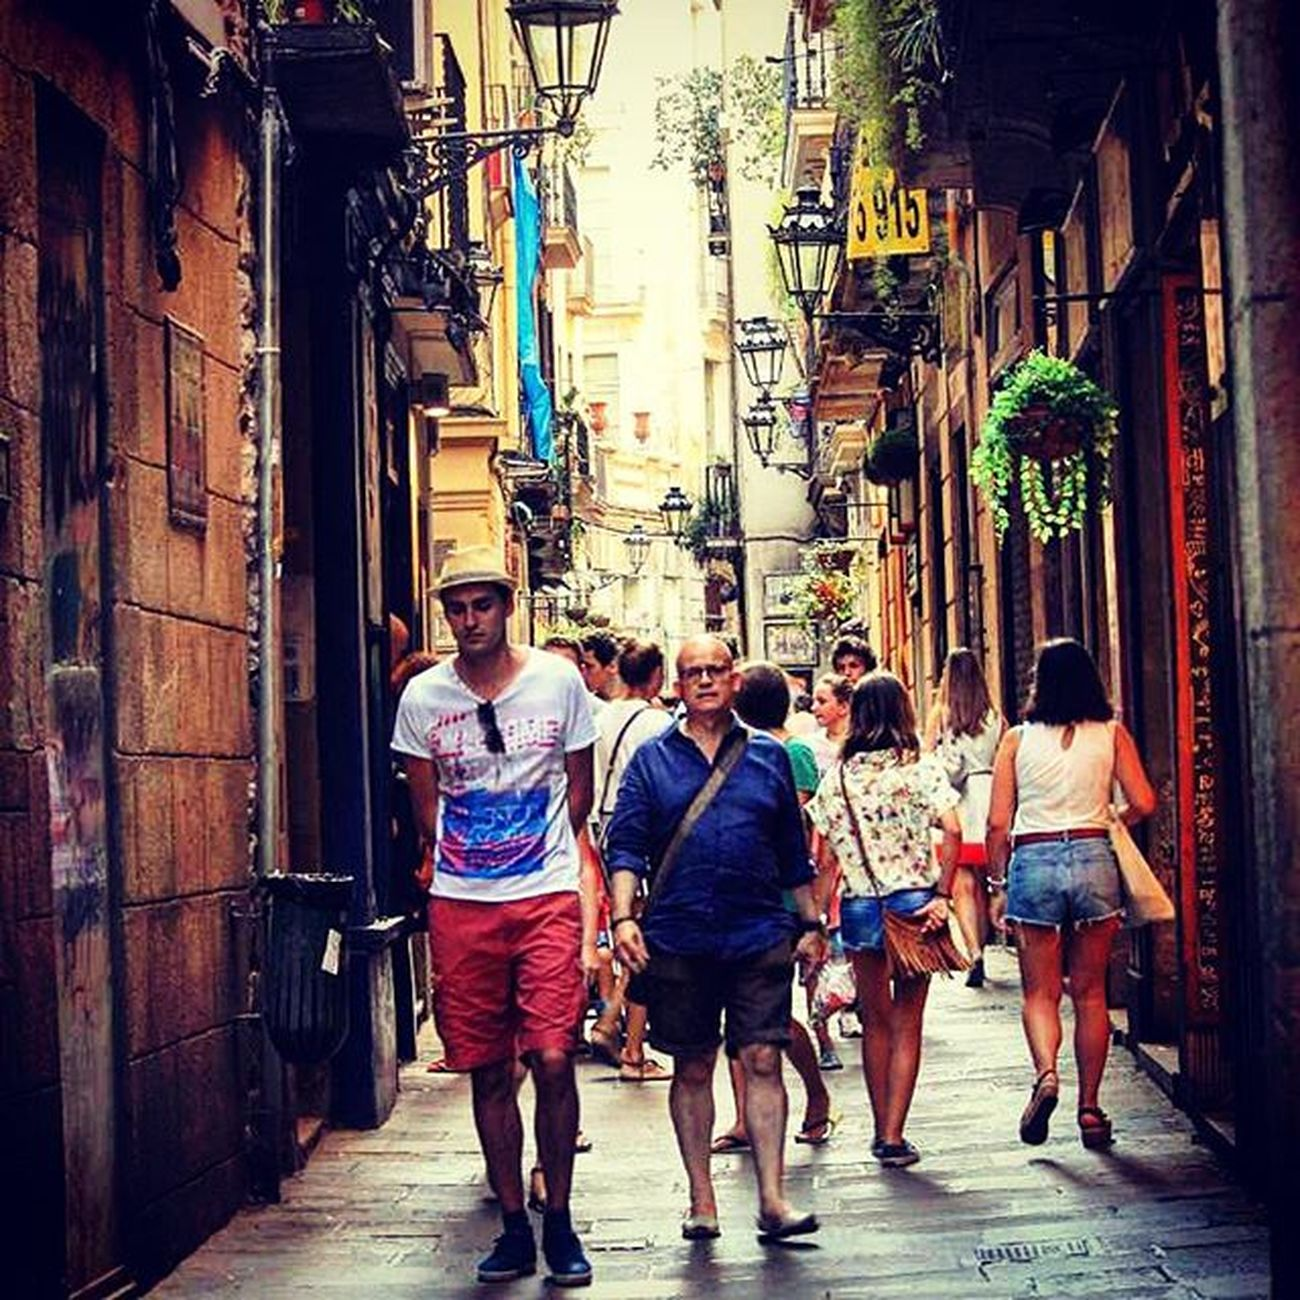 People Oldroads Oldcity Streetphotography Barcelona Barcelone Catalonia SPAIN Summertime Photographyislifee Takingpictures